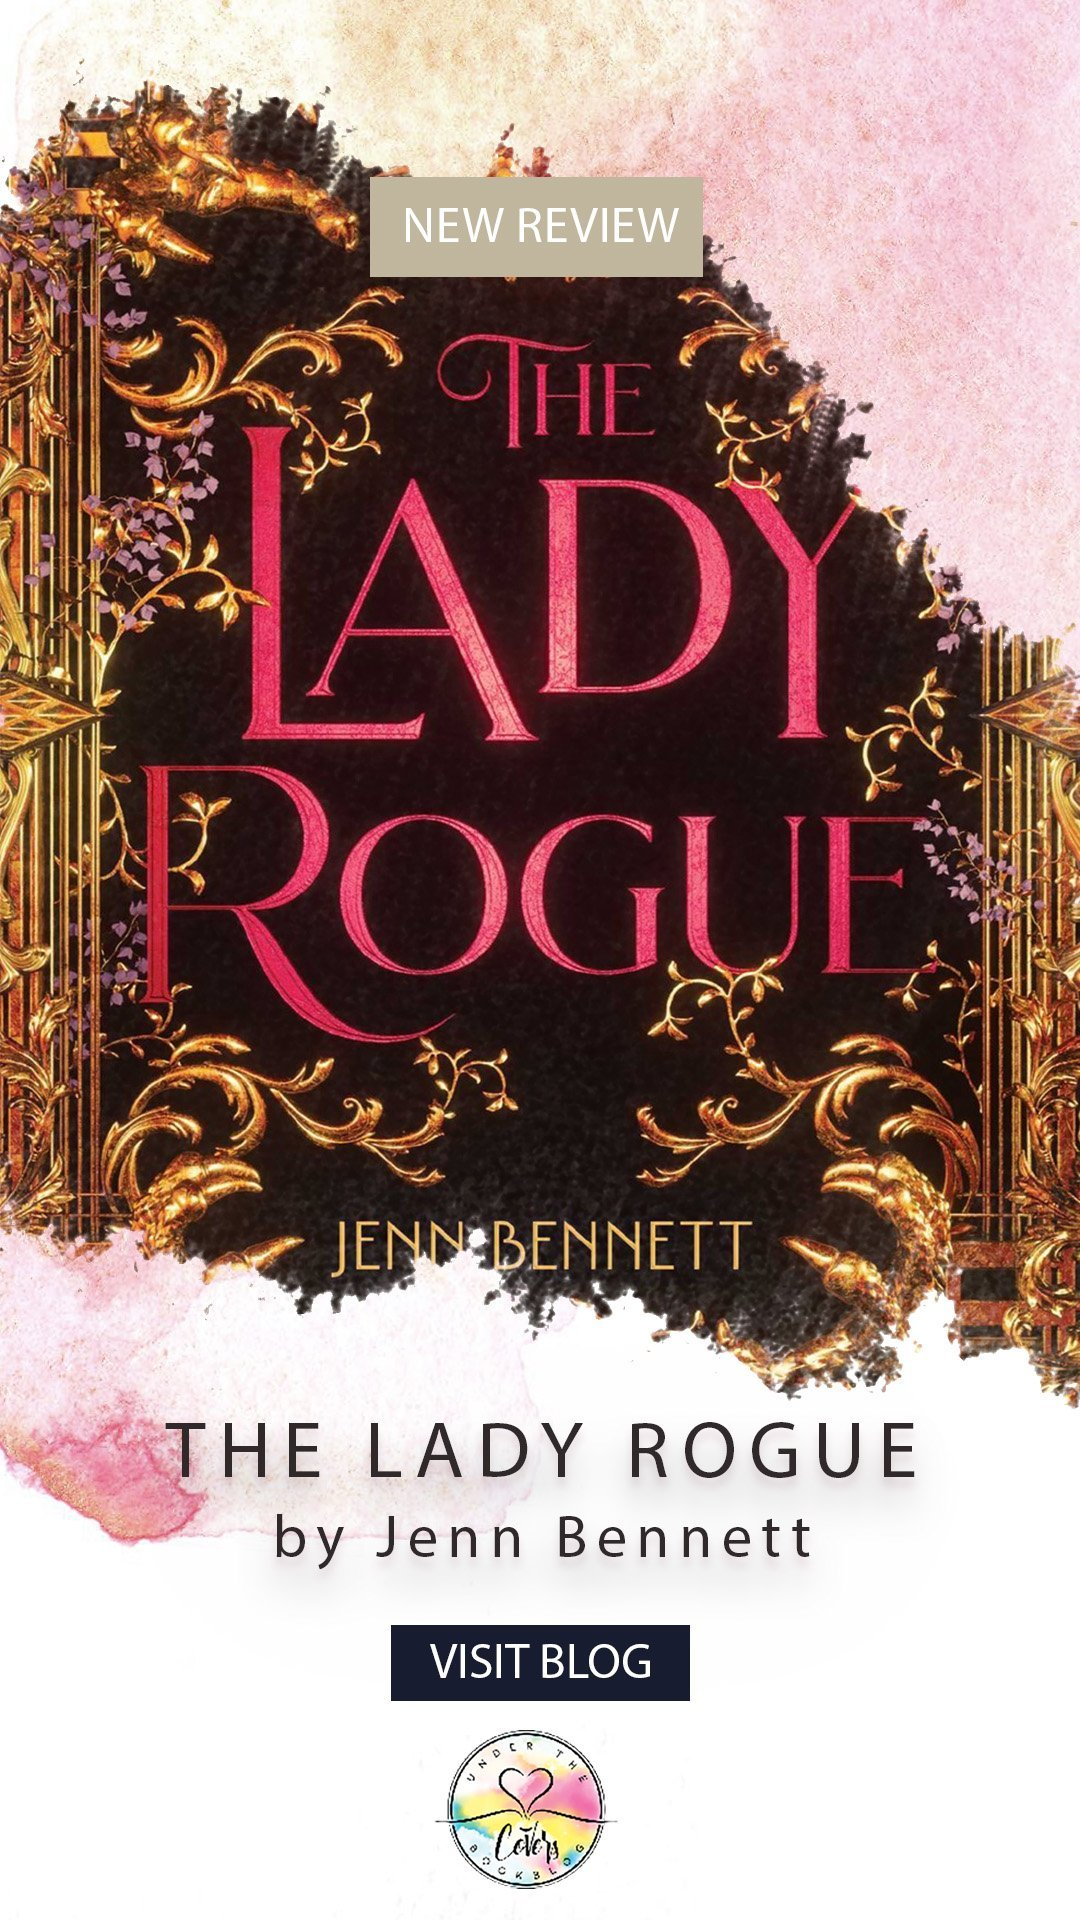 ARC Review: The Lady Rogue by Jenn Bennett